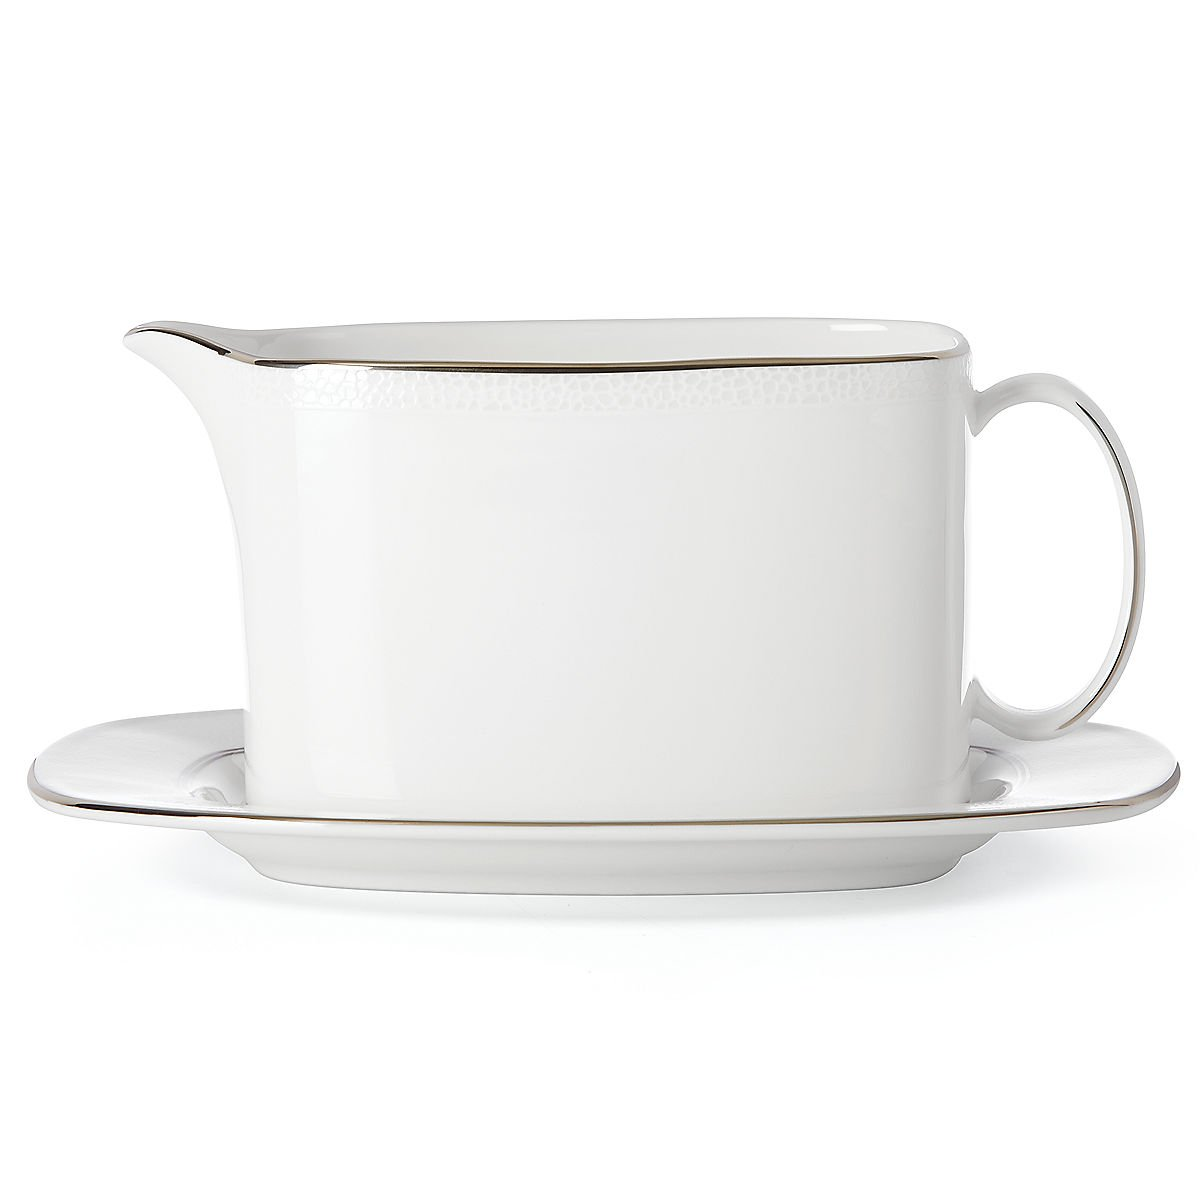 Kate Spade Cypress Point Gravy Boat w/Stand